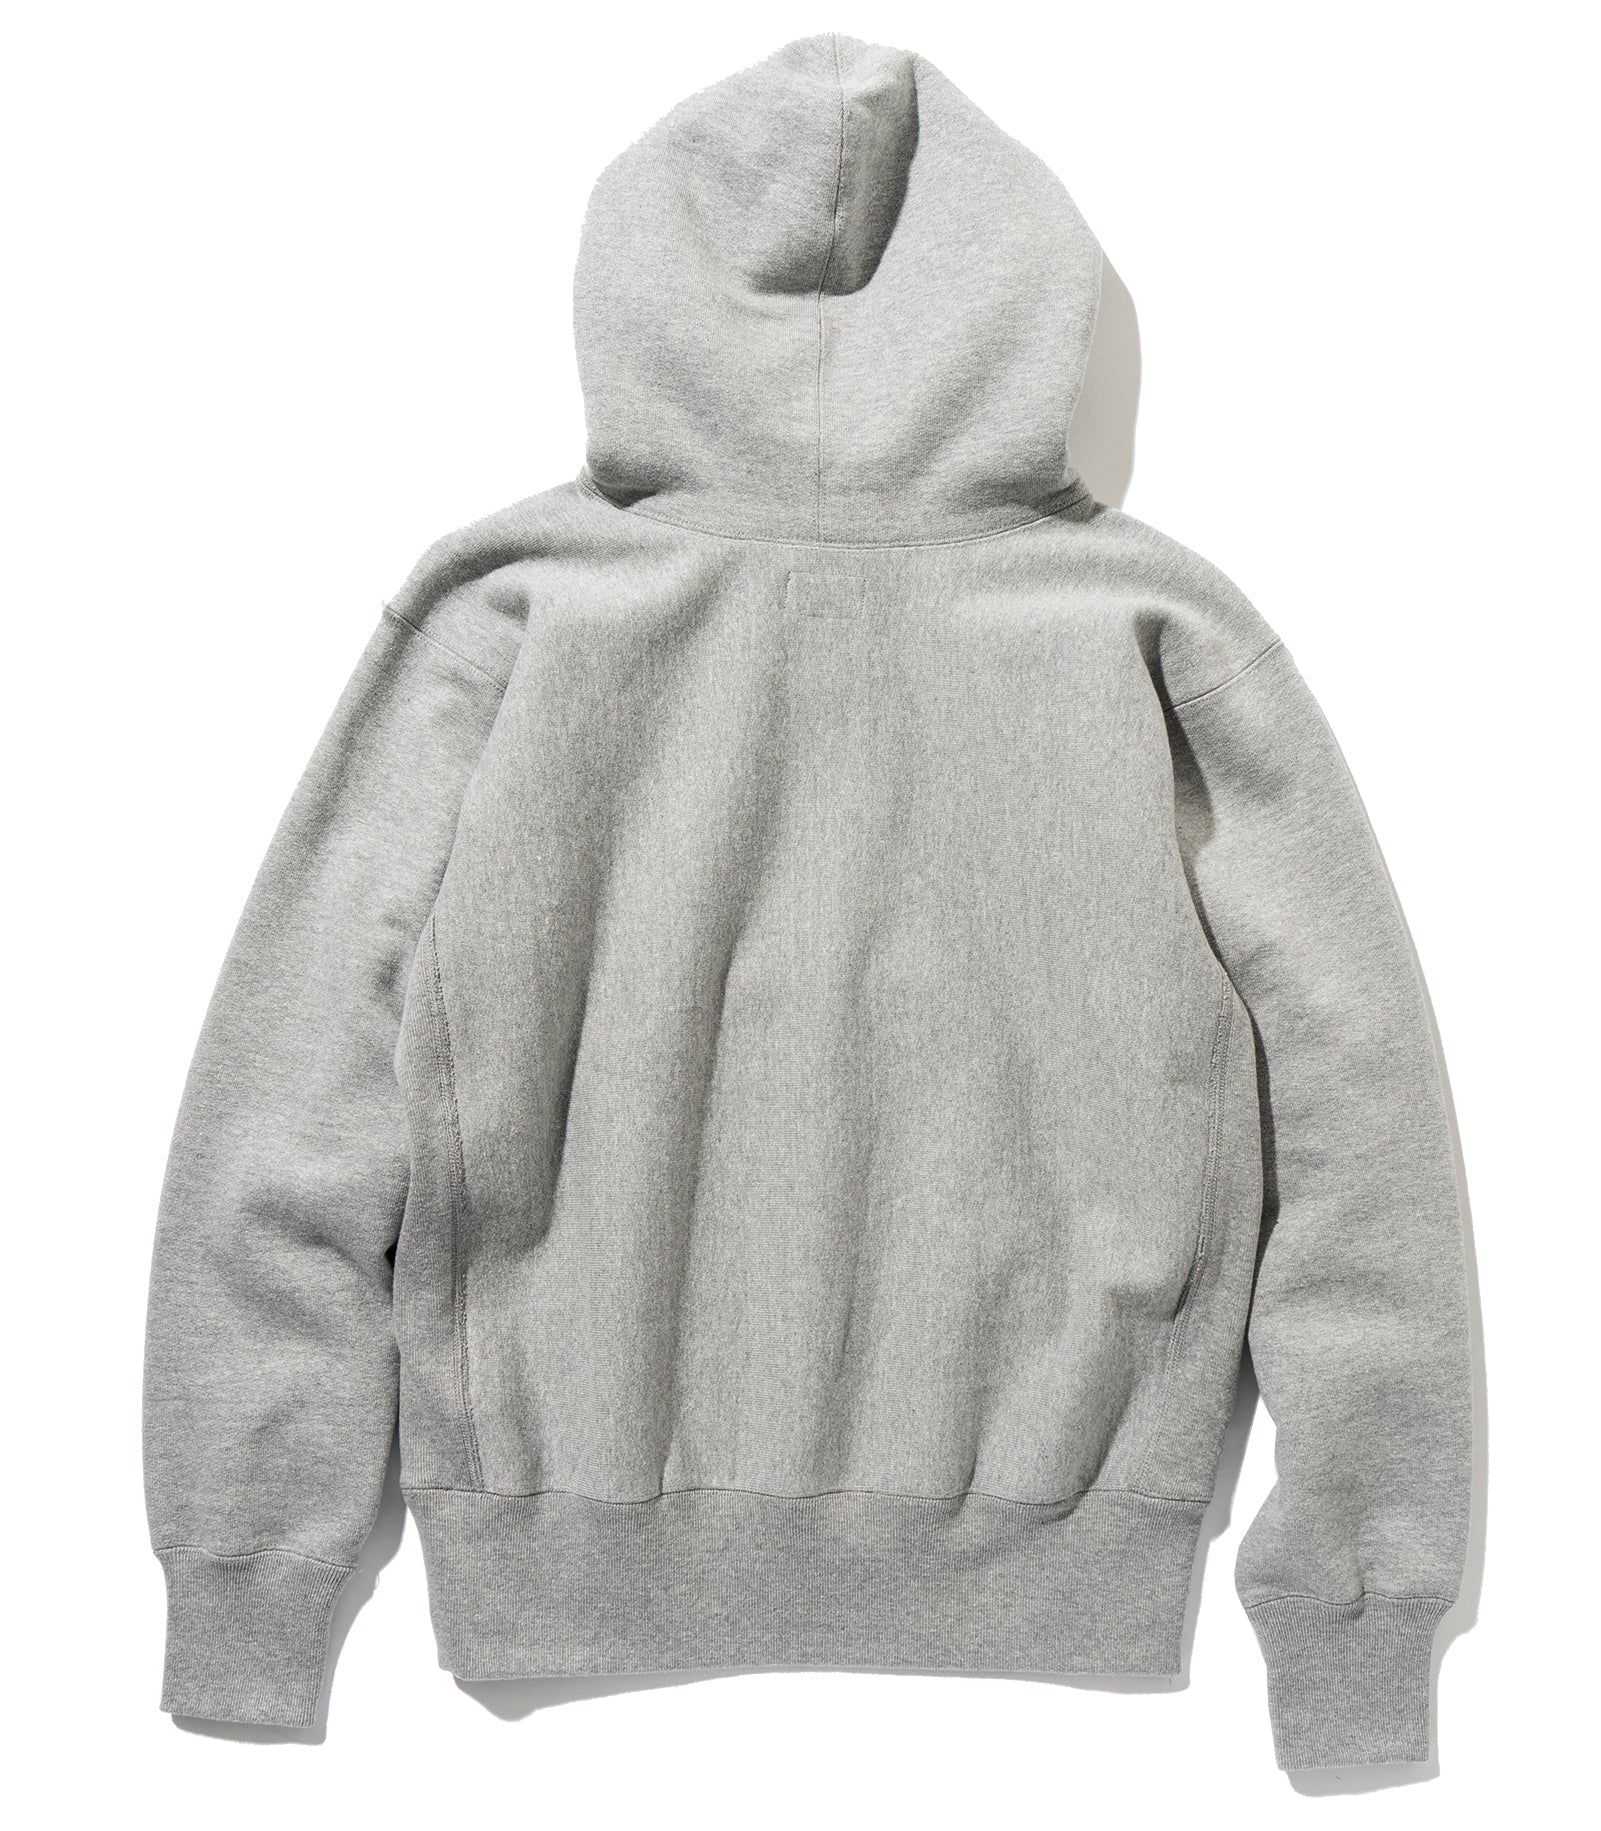 HOODED SWEATSHIRT / U of P